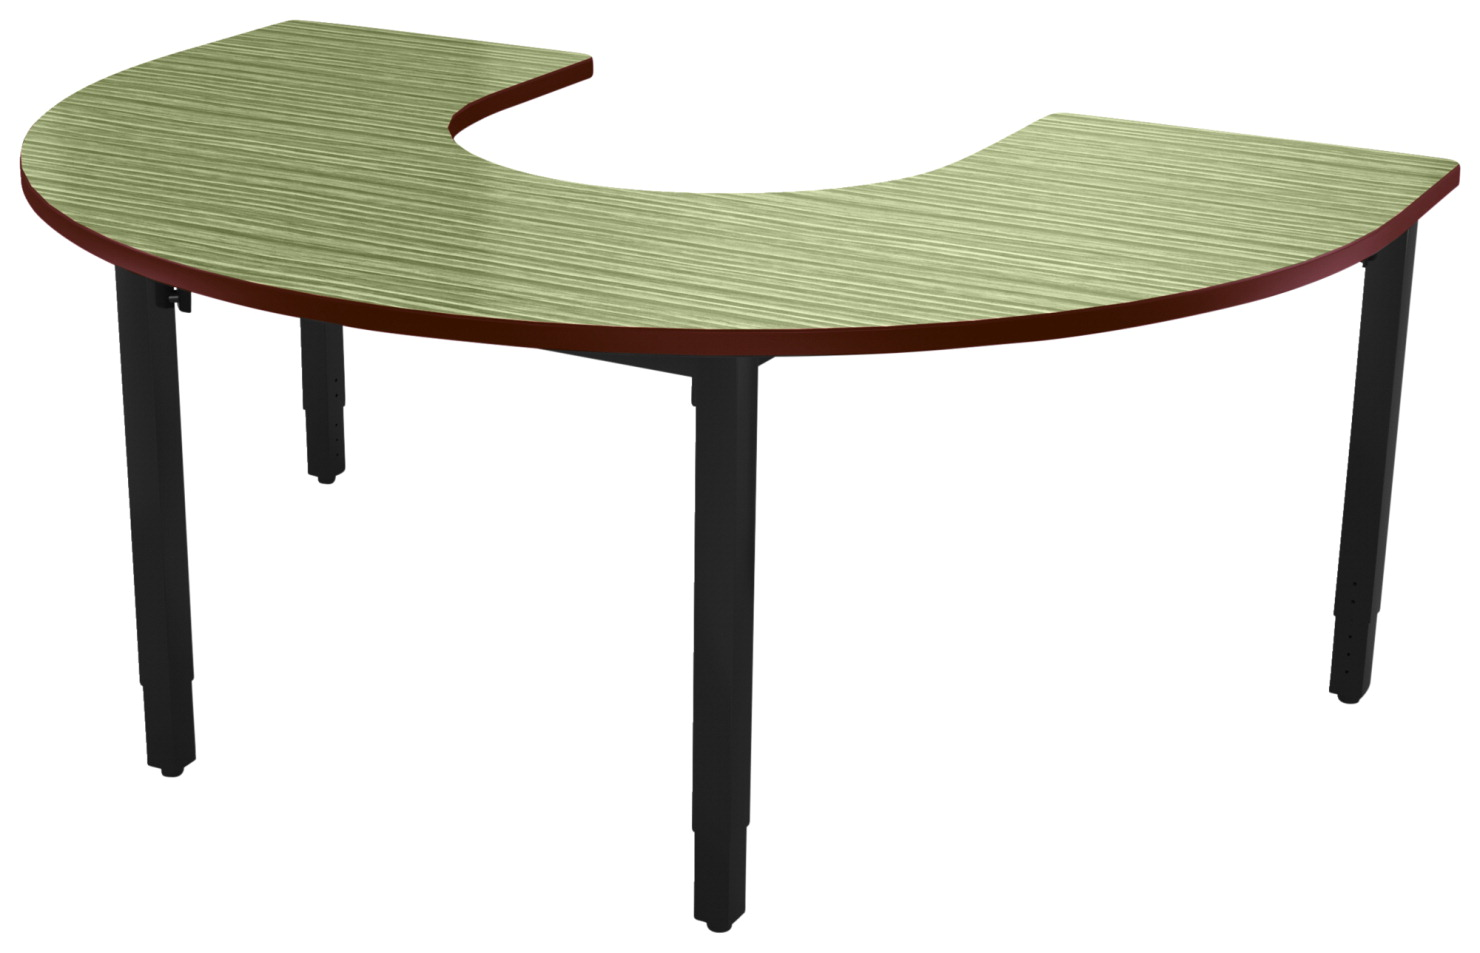 Classroom Select Vigor Table, 72 x 48 Inch Horseshoe Laminate Top with T-Mold, Various Options